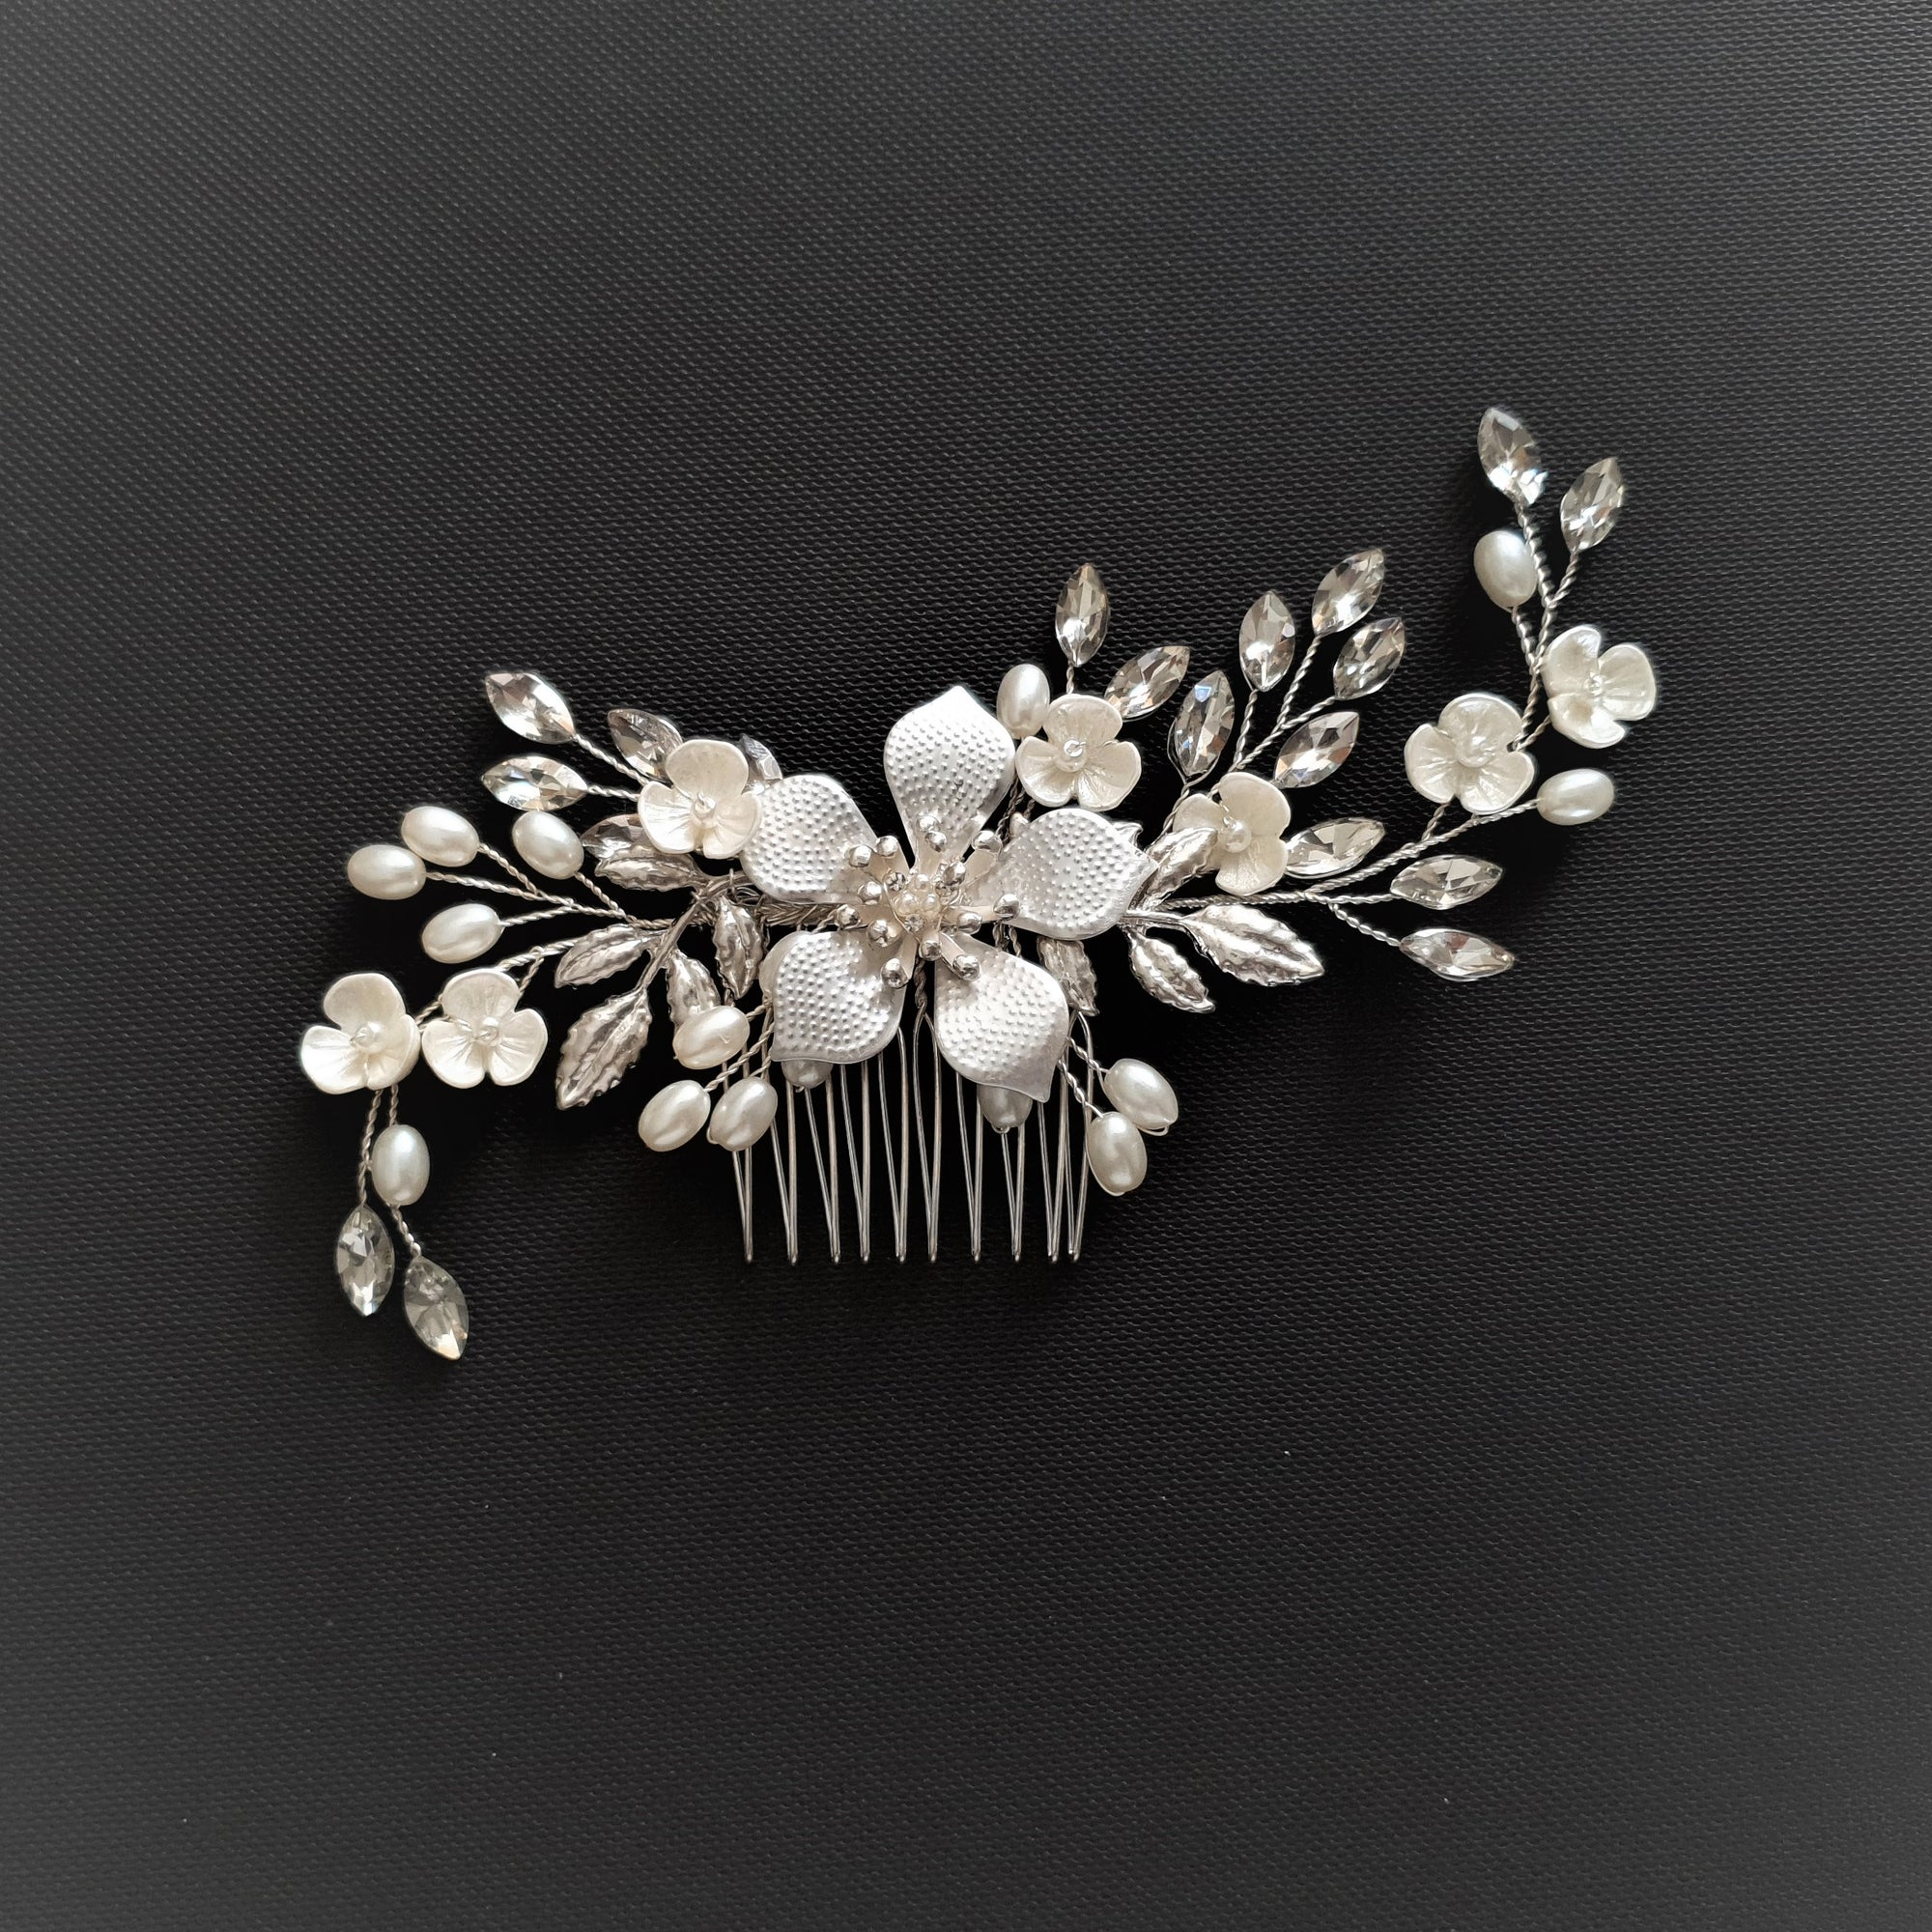 Jeweled Rose Gold Bridal Hair Comb with Pearl & Crystal Leaves-Freya